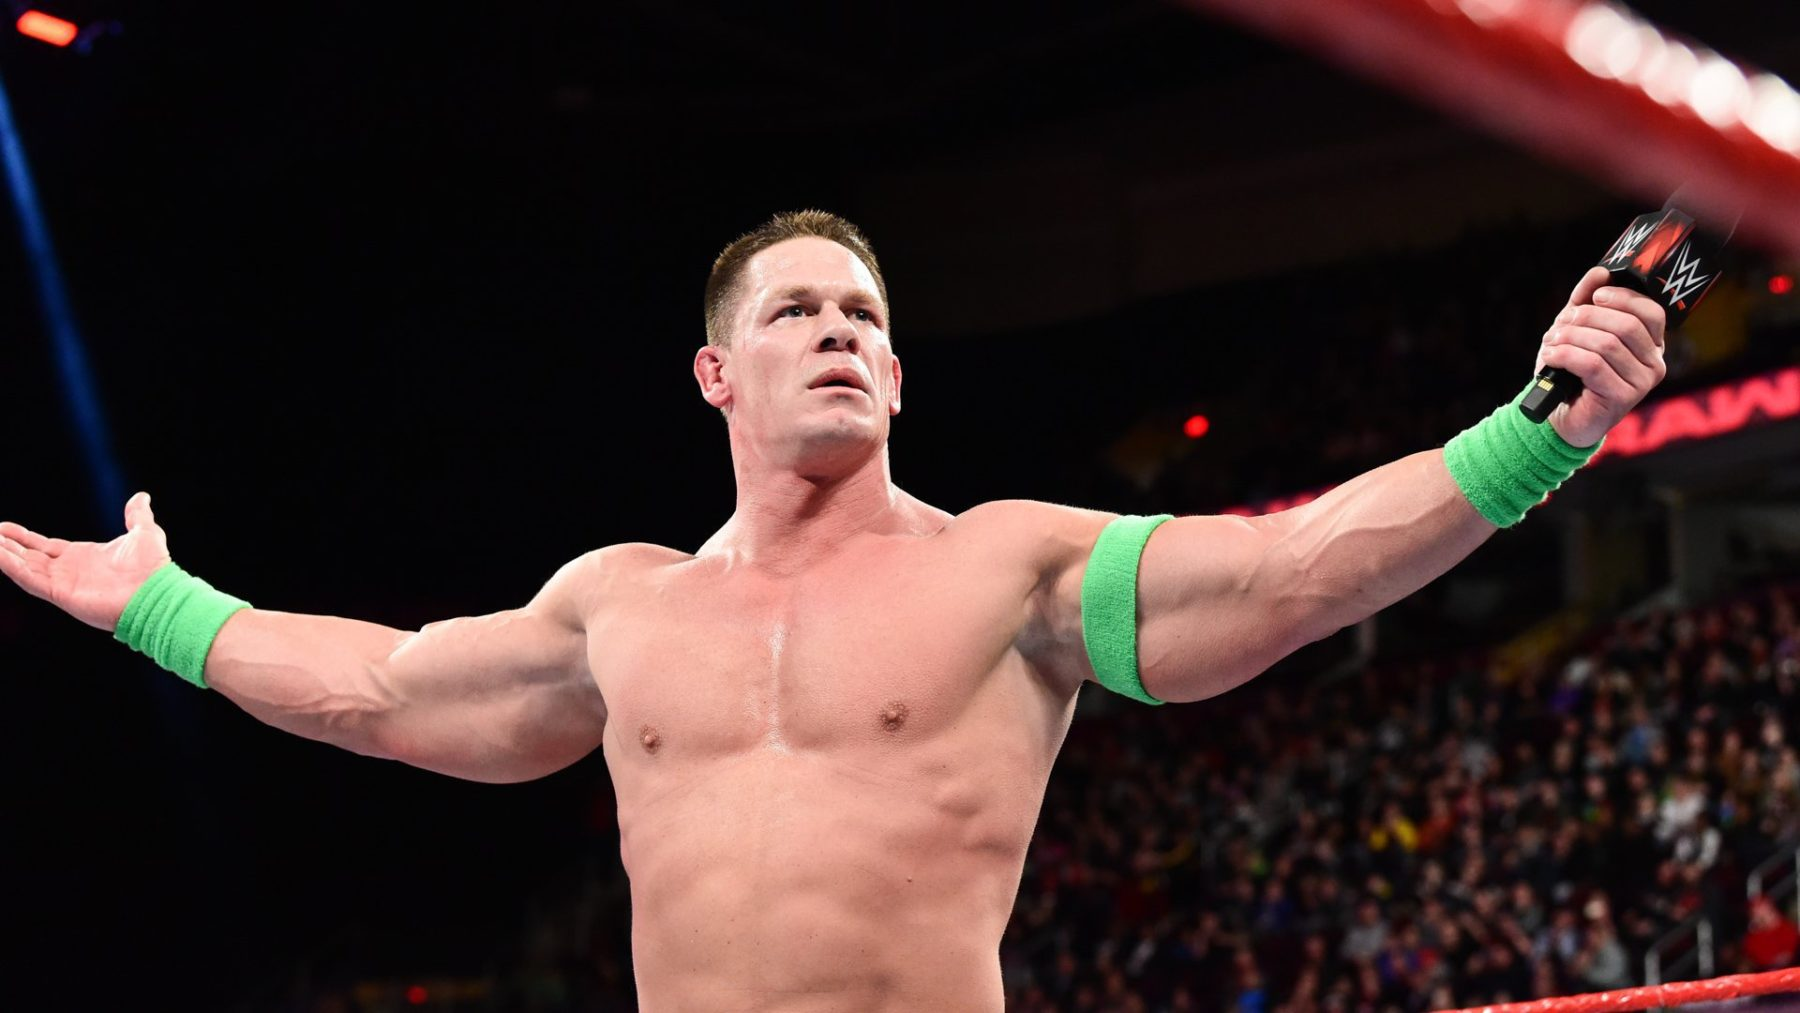 John Cena returns to the world of WWE for the streaming series WWE Evil